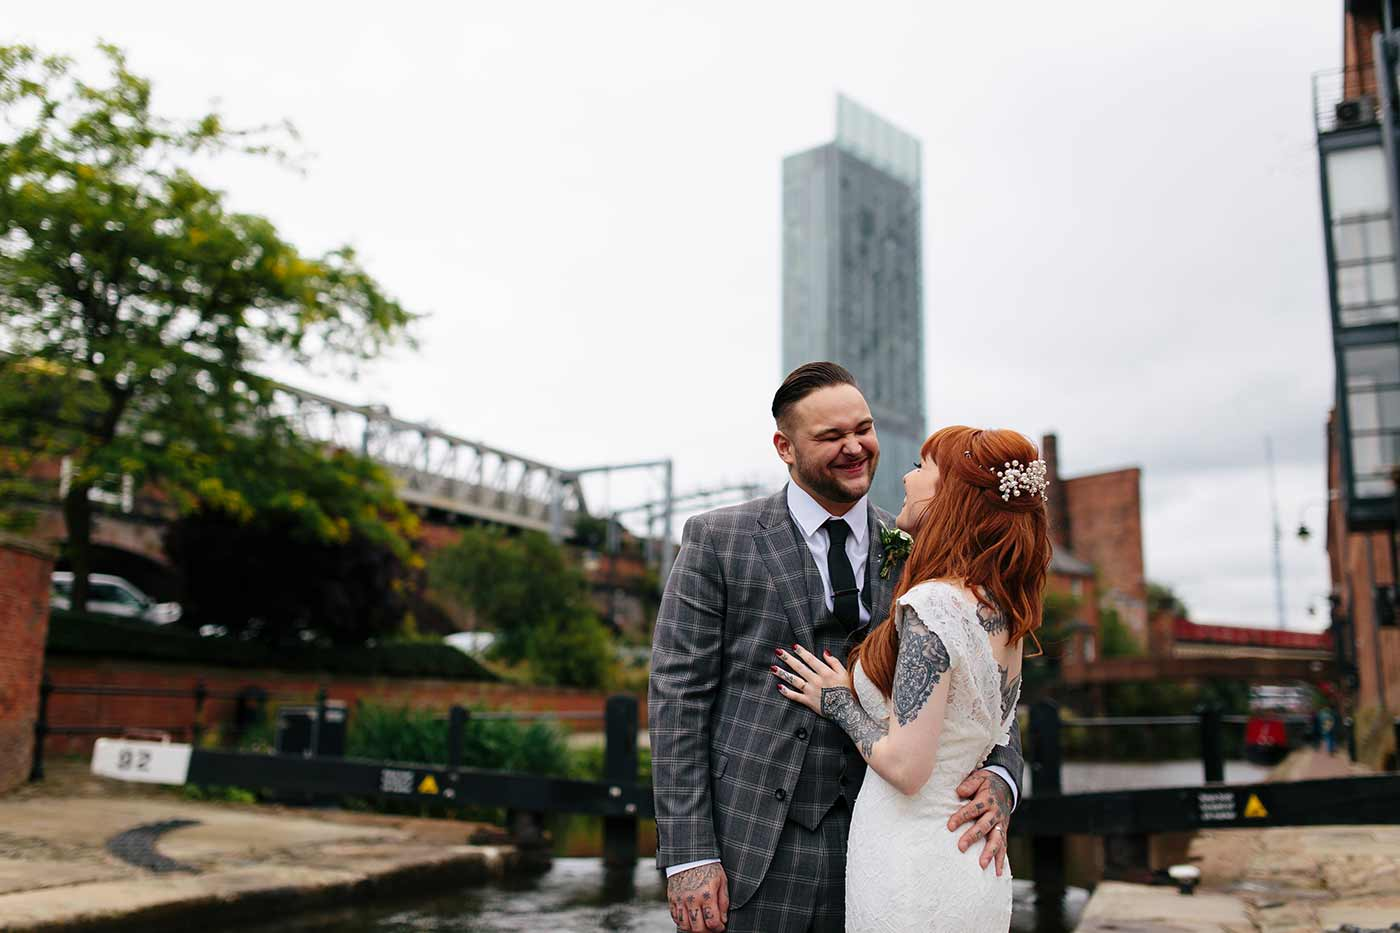 Alternative couples portrait with the hilton hotel manchester in the background